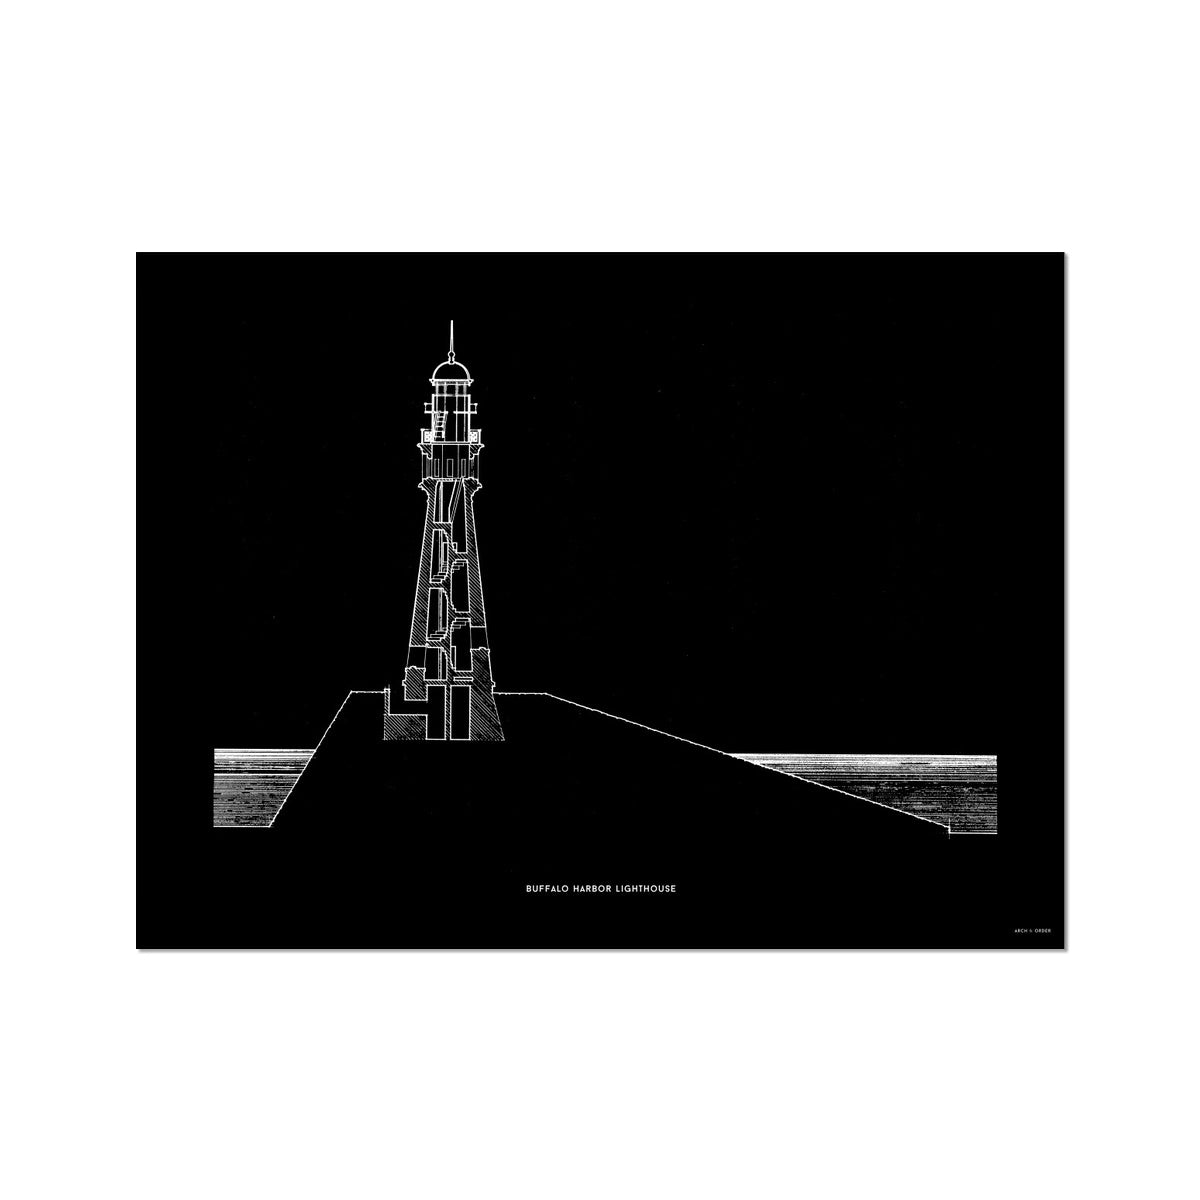 Buffalo Harbor Lighthouse - Cross Section - Black -  Etching Paper Print